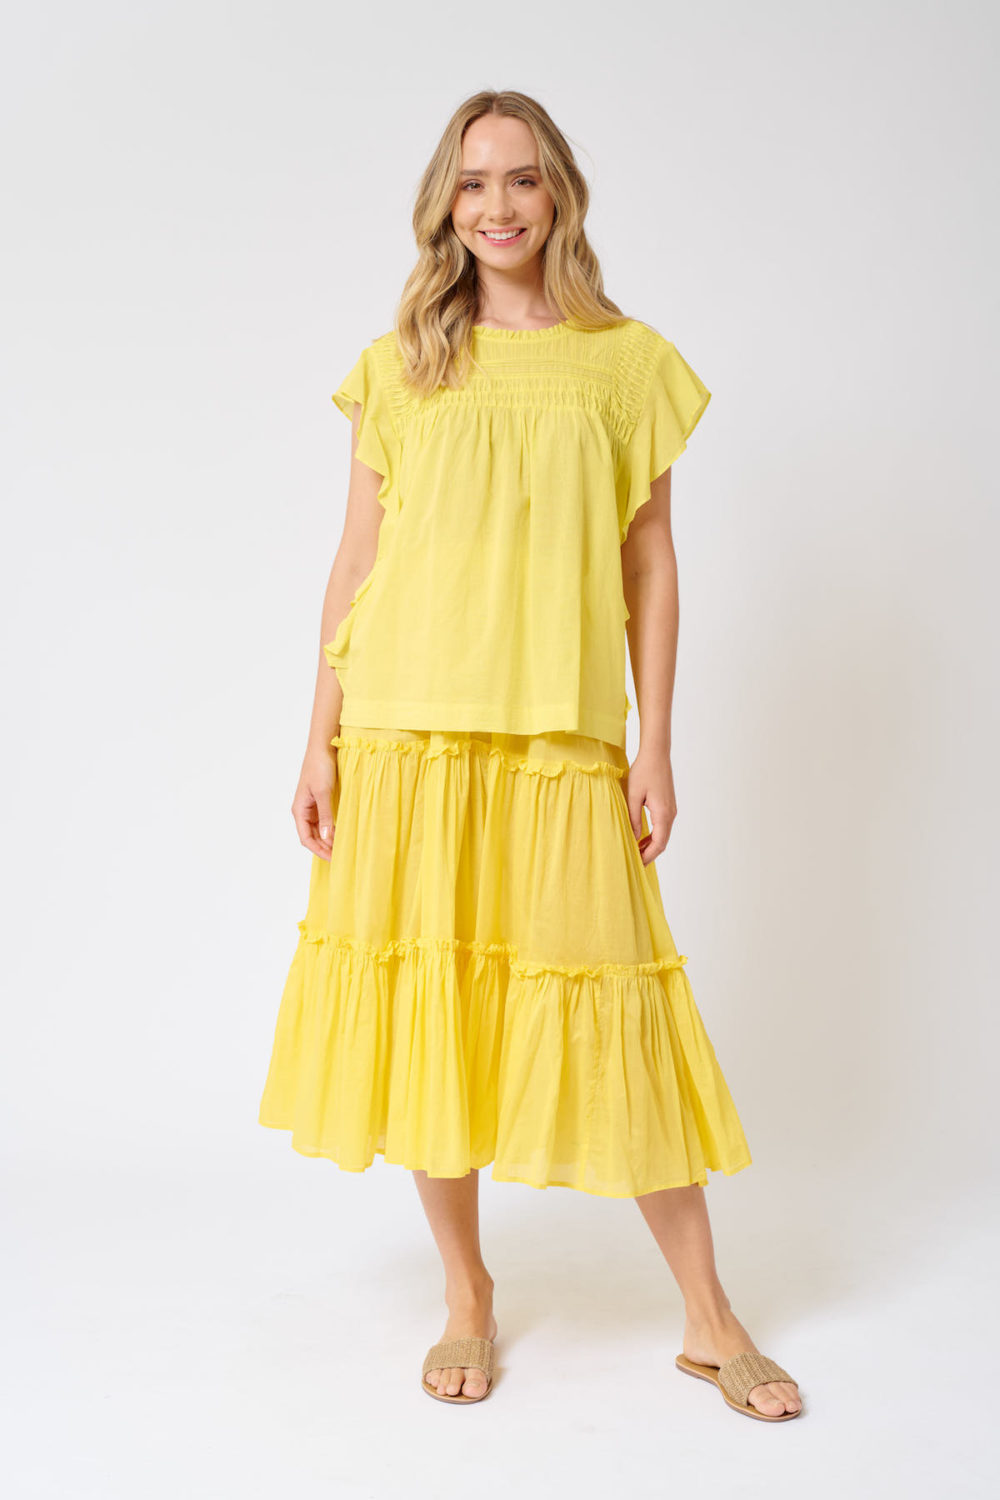 Loreta Top canary Yellow- Alessandra